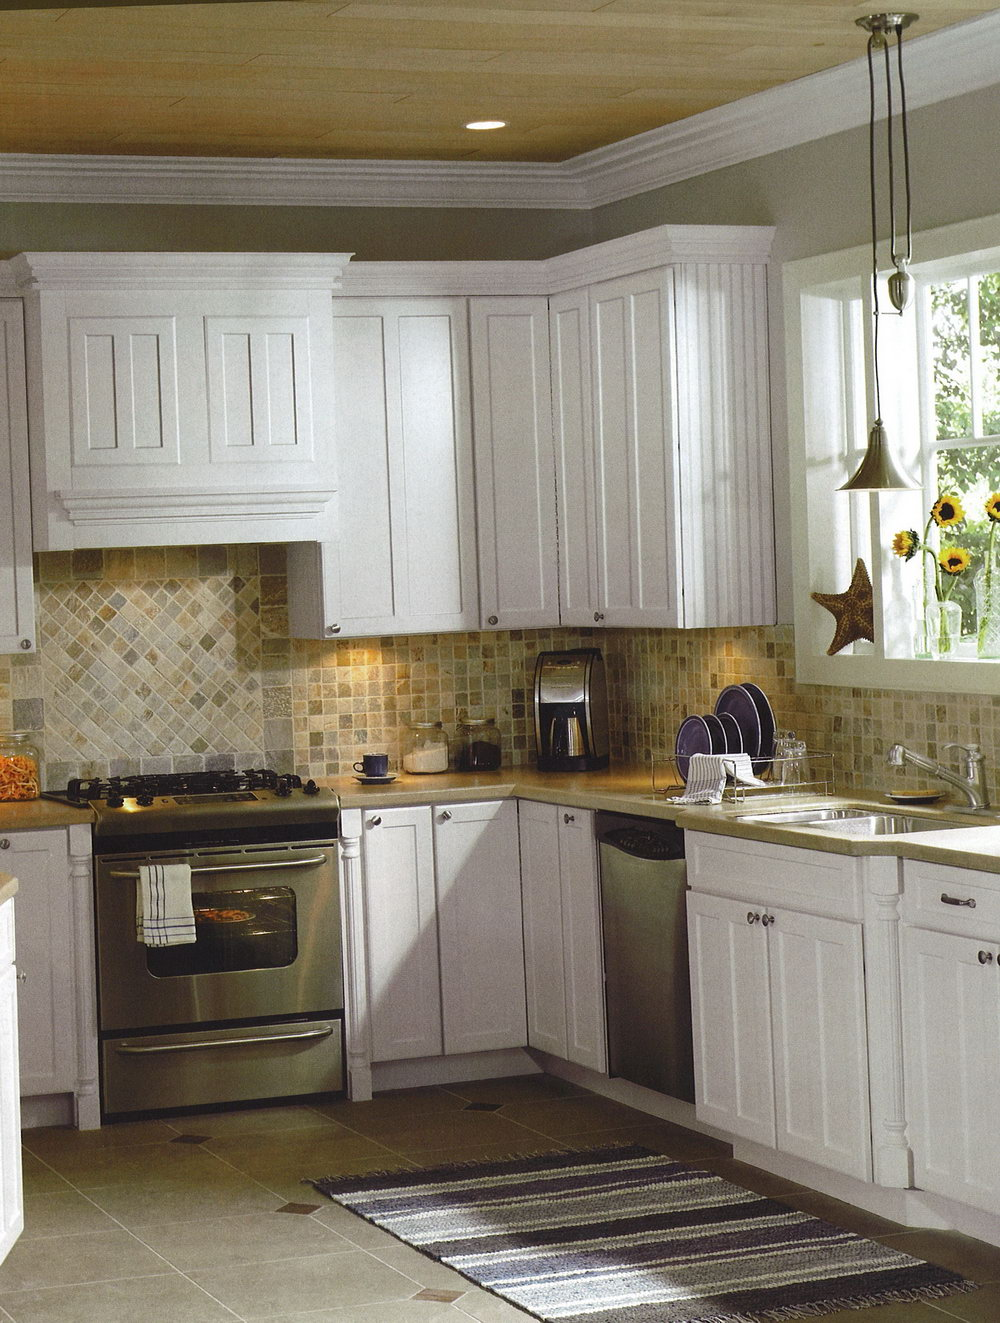 Unique Small Kitchen Backsplash Ideas Designs Travertine Whitele With White  Cabinets Modern Design Galley Tile Tiles